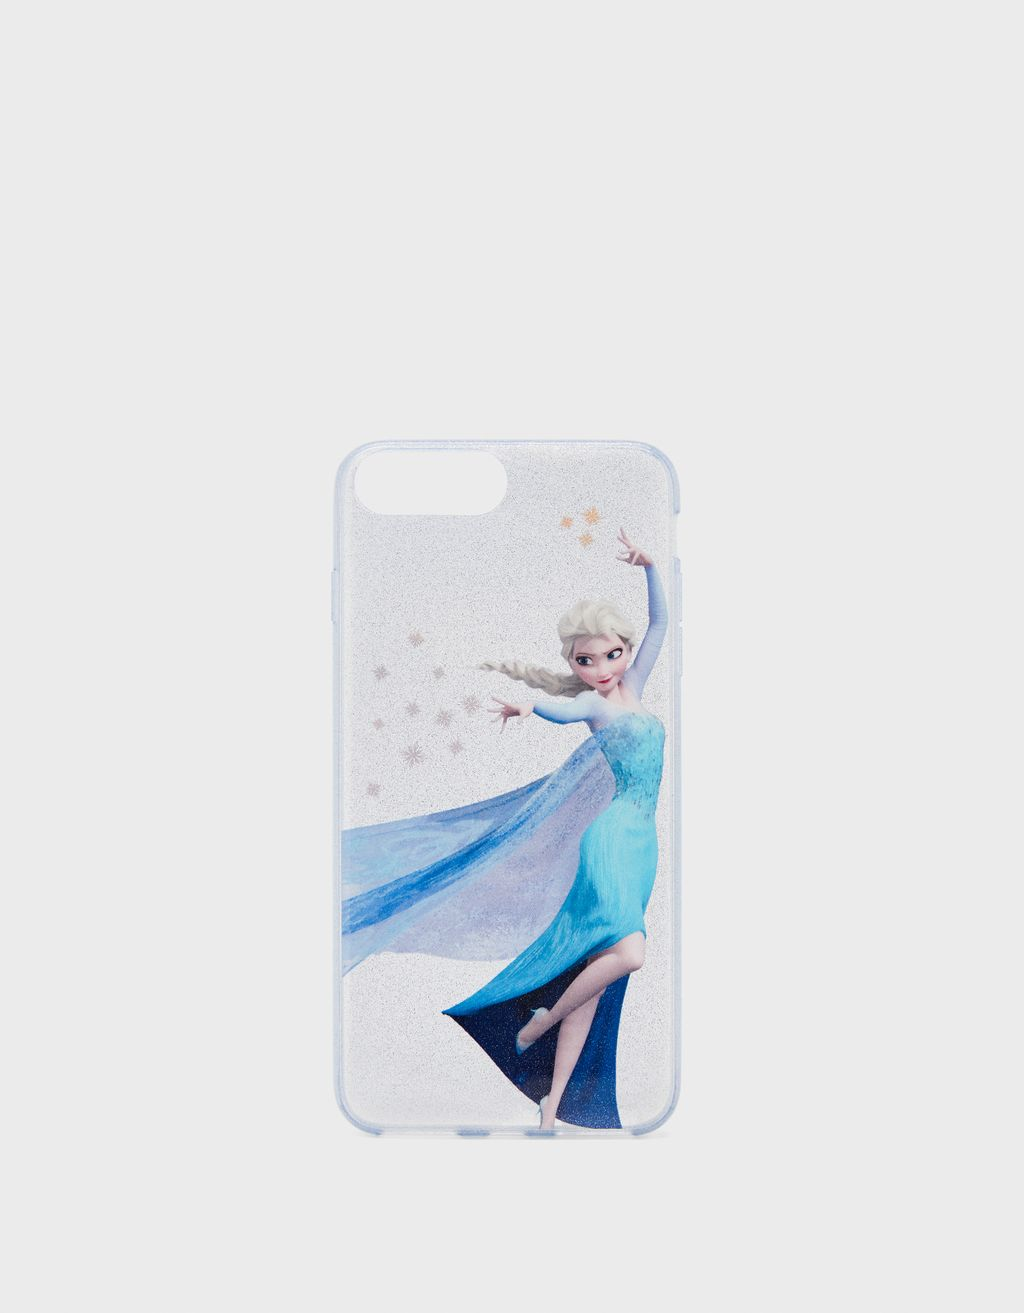 Frozen iPhone 6 Plus / 7 Plus / 8 Plus case